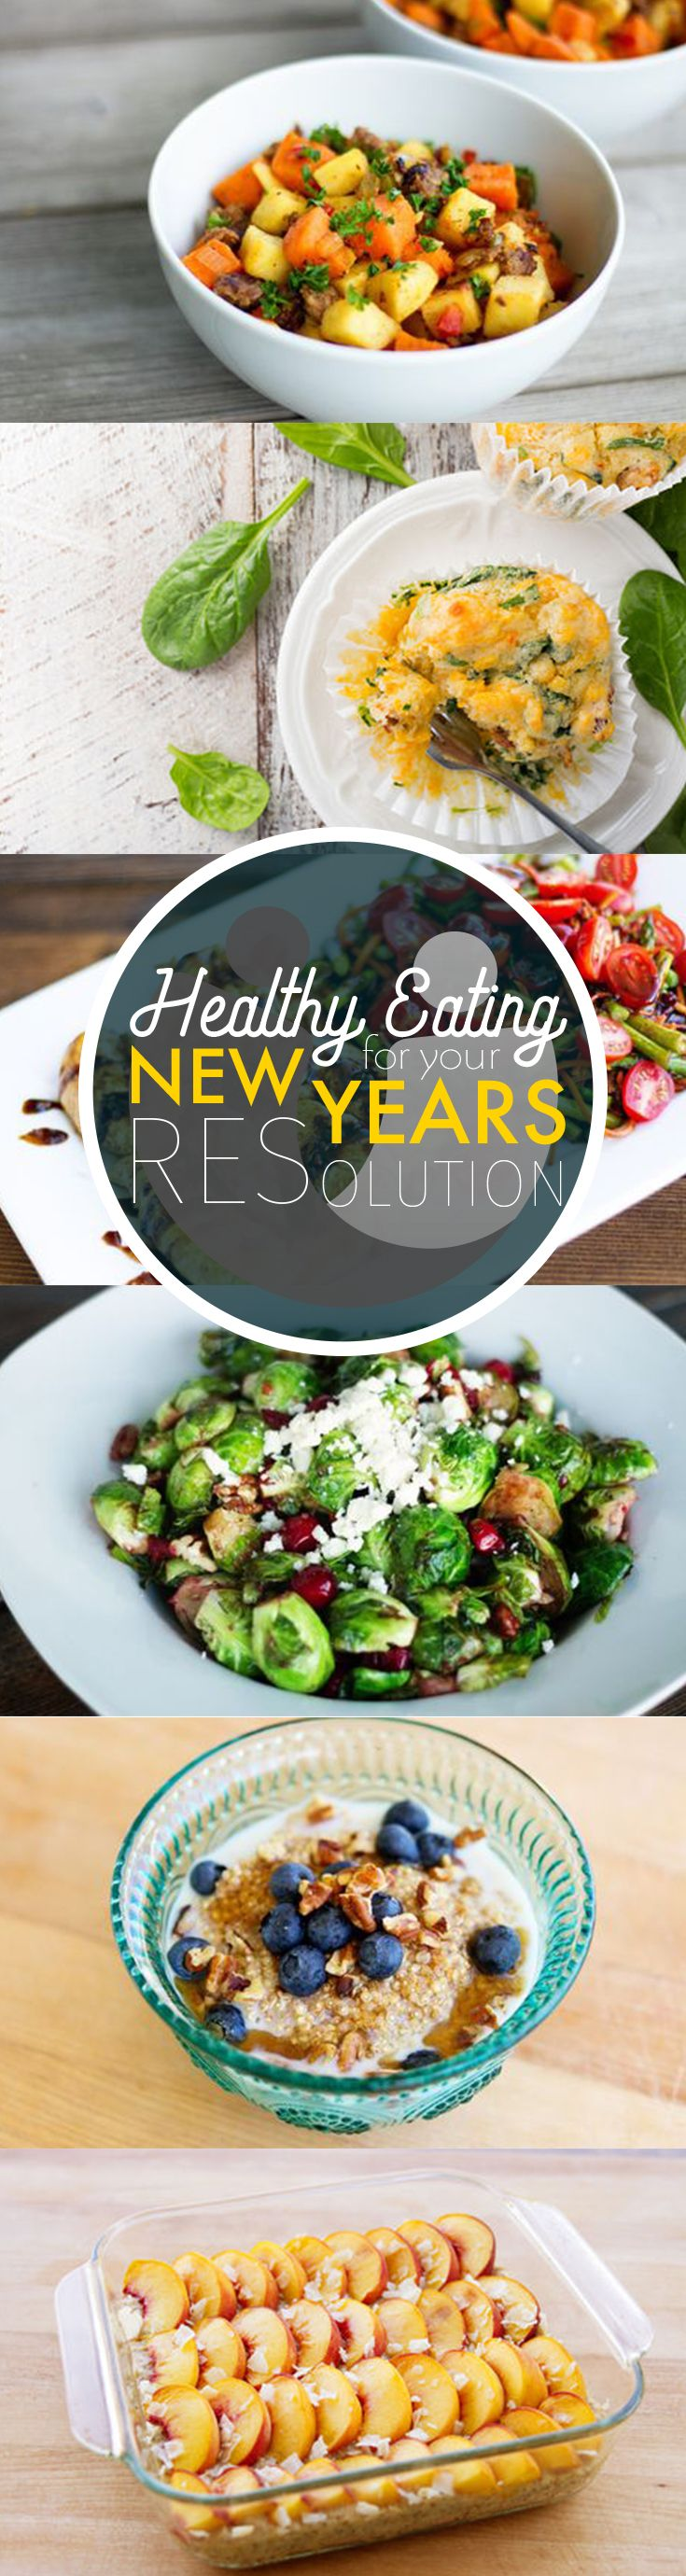 Resolve to eat right in the New Year so you can feel your best! Getting started is easy—and delicious—with this special collection of healthy, diabetes-friendly recipes. See mouthwatering meals, snacks, and treats!